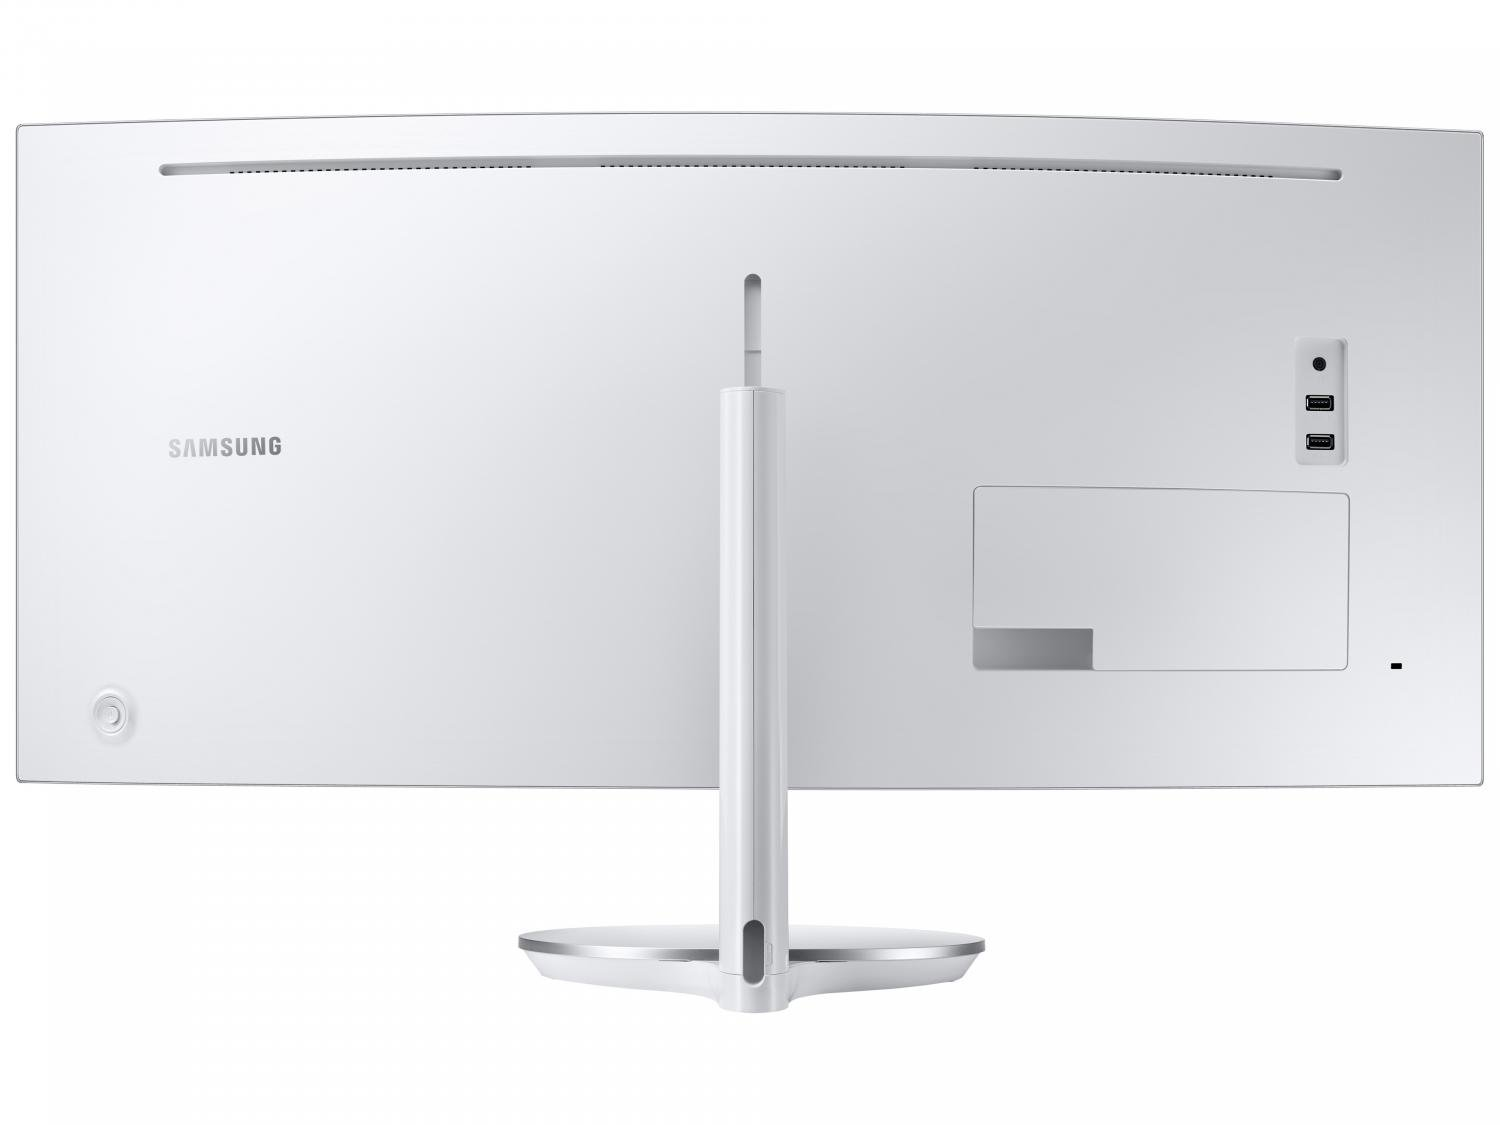 Foto 3 - Monitor Samsung LED Curvo 34 Widescreen - C34F791